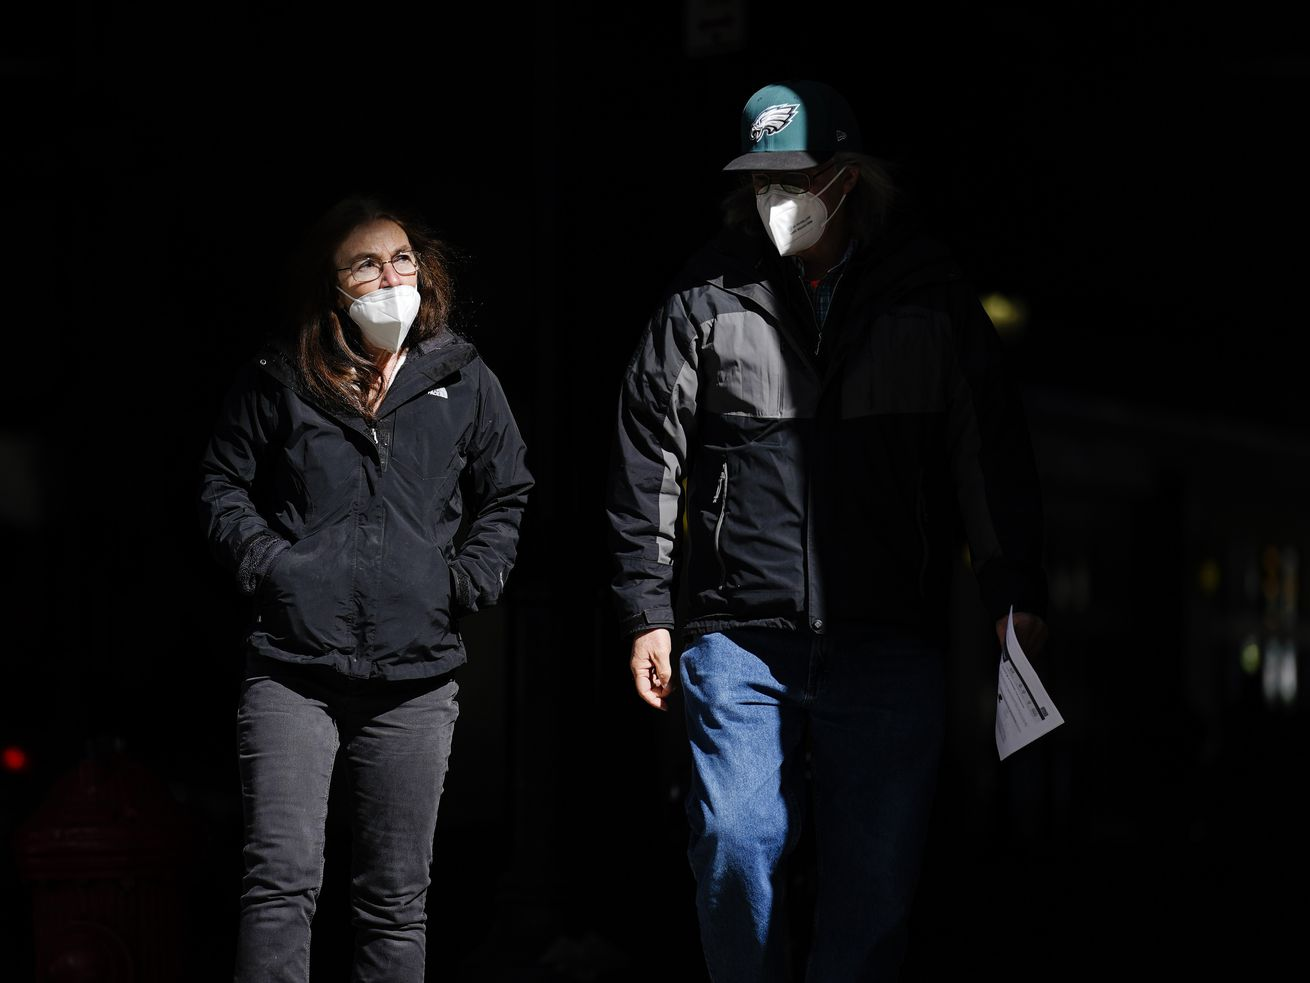 In this Wednesday, March 3, 2021 file photo, people wearing face masks as a precaution against the coronavirus walk through a shaft of light on a street in Philadelphia.